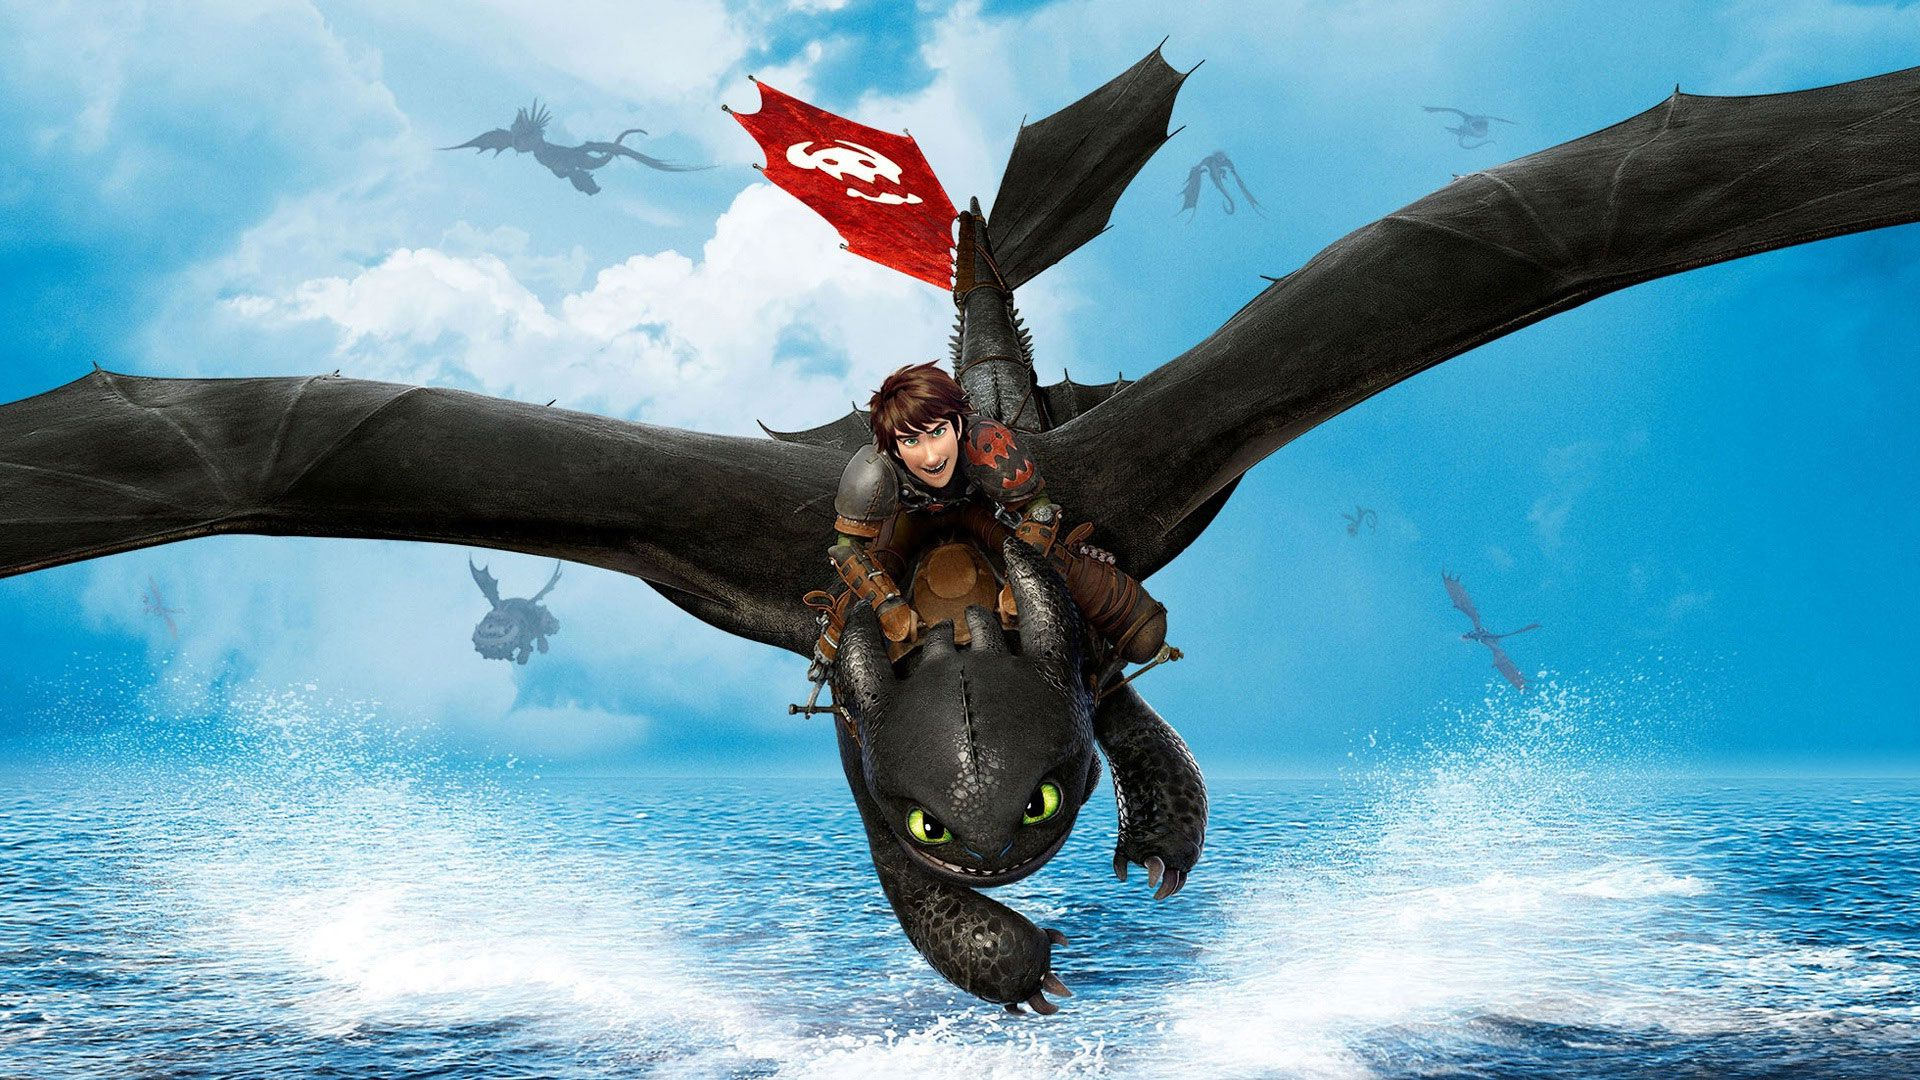 How To Train Your Dragon 2 Wallpaper Hd Collection How Train Your Dragon How To Train Your Dragon Dragon Movies